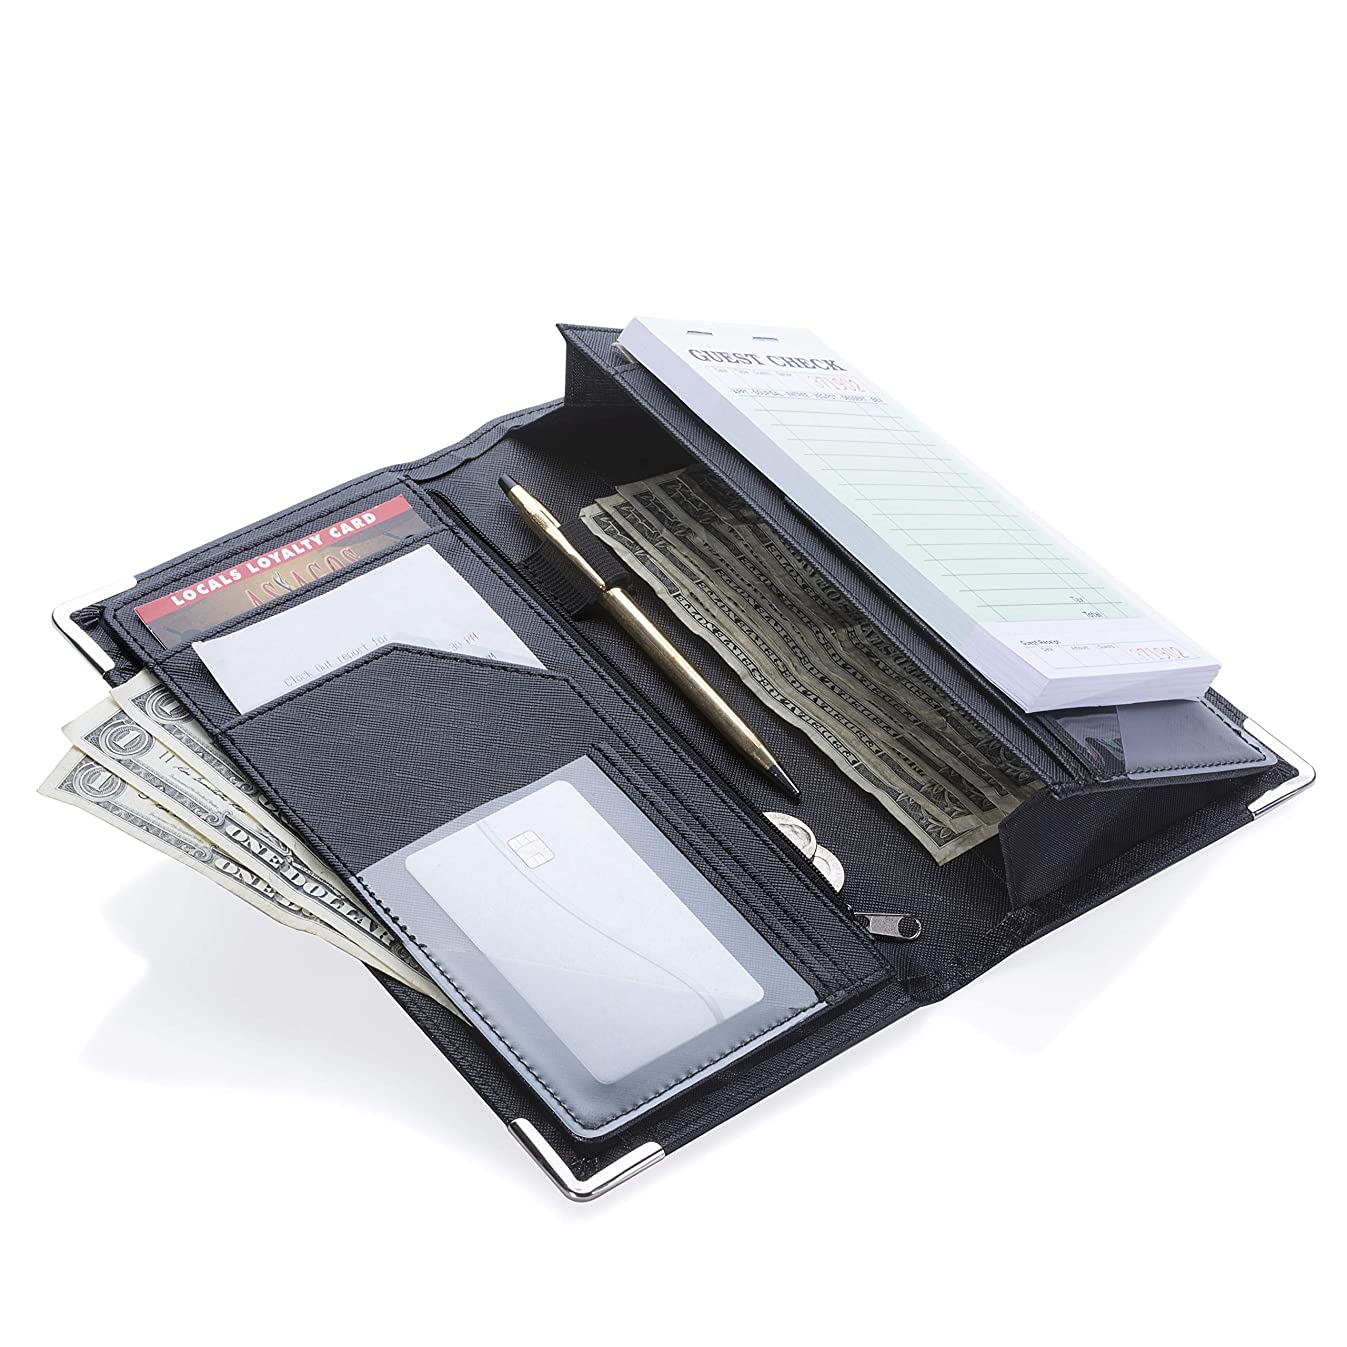 Sonic Server 5x9 11-Pocket Server Book Organizer with Double Magnetic Pockets, Zipper Pouch & Pen Holder for Waitress Waiter Waitstaff | Cross-Textured Black | Fits Apron Holds Guest Checks